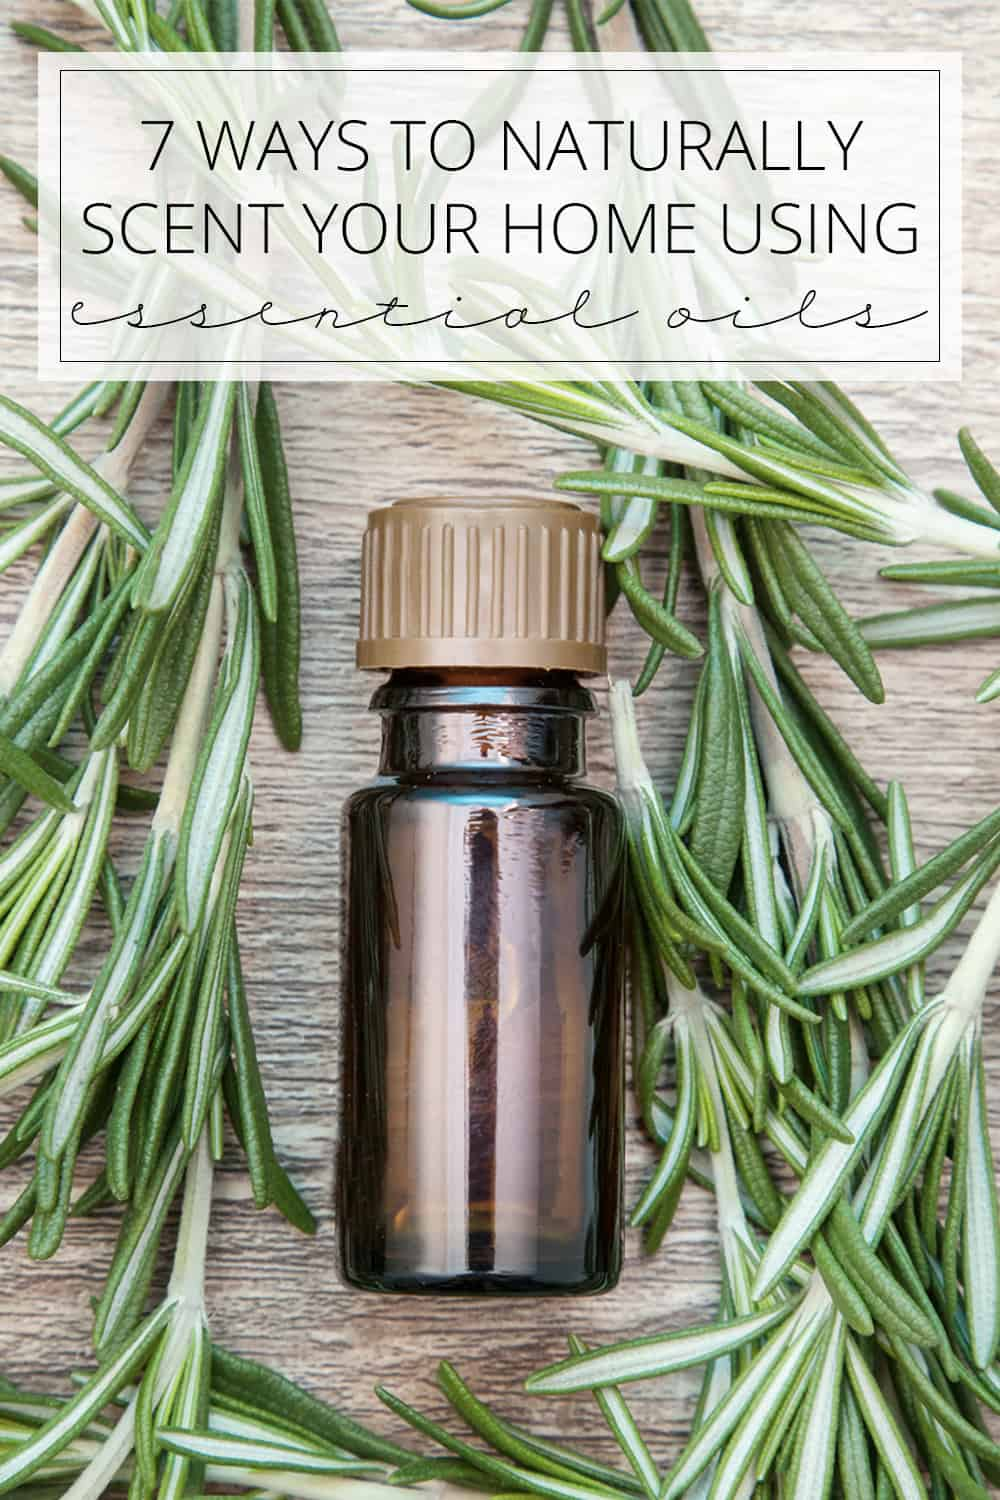 7 ways to naturally scent your home using essential oils